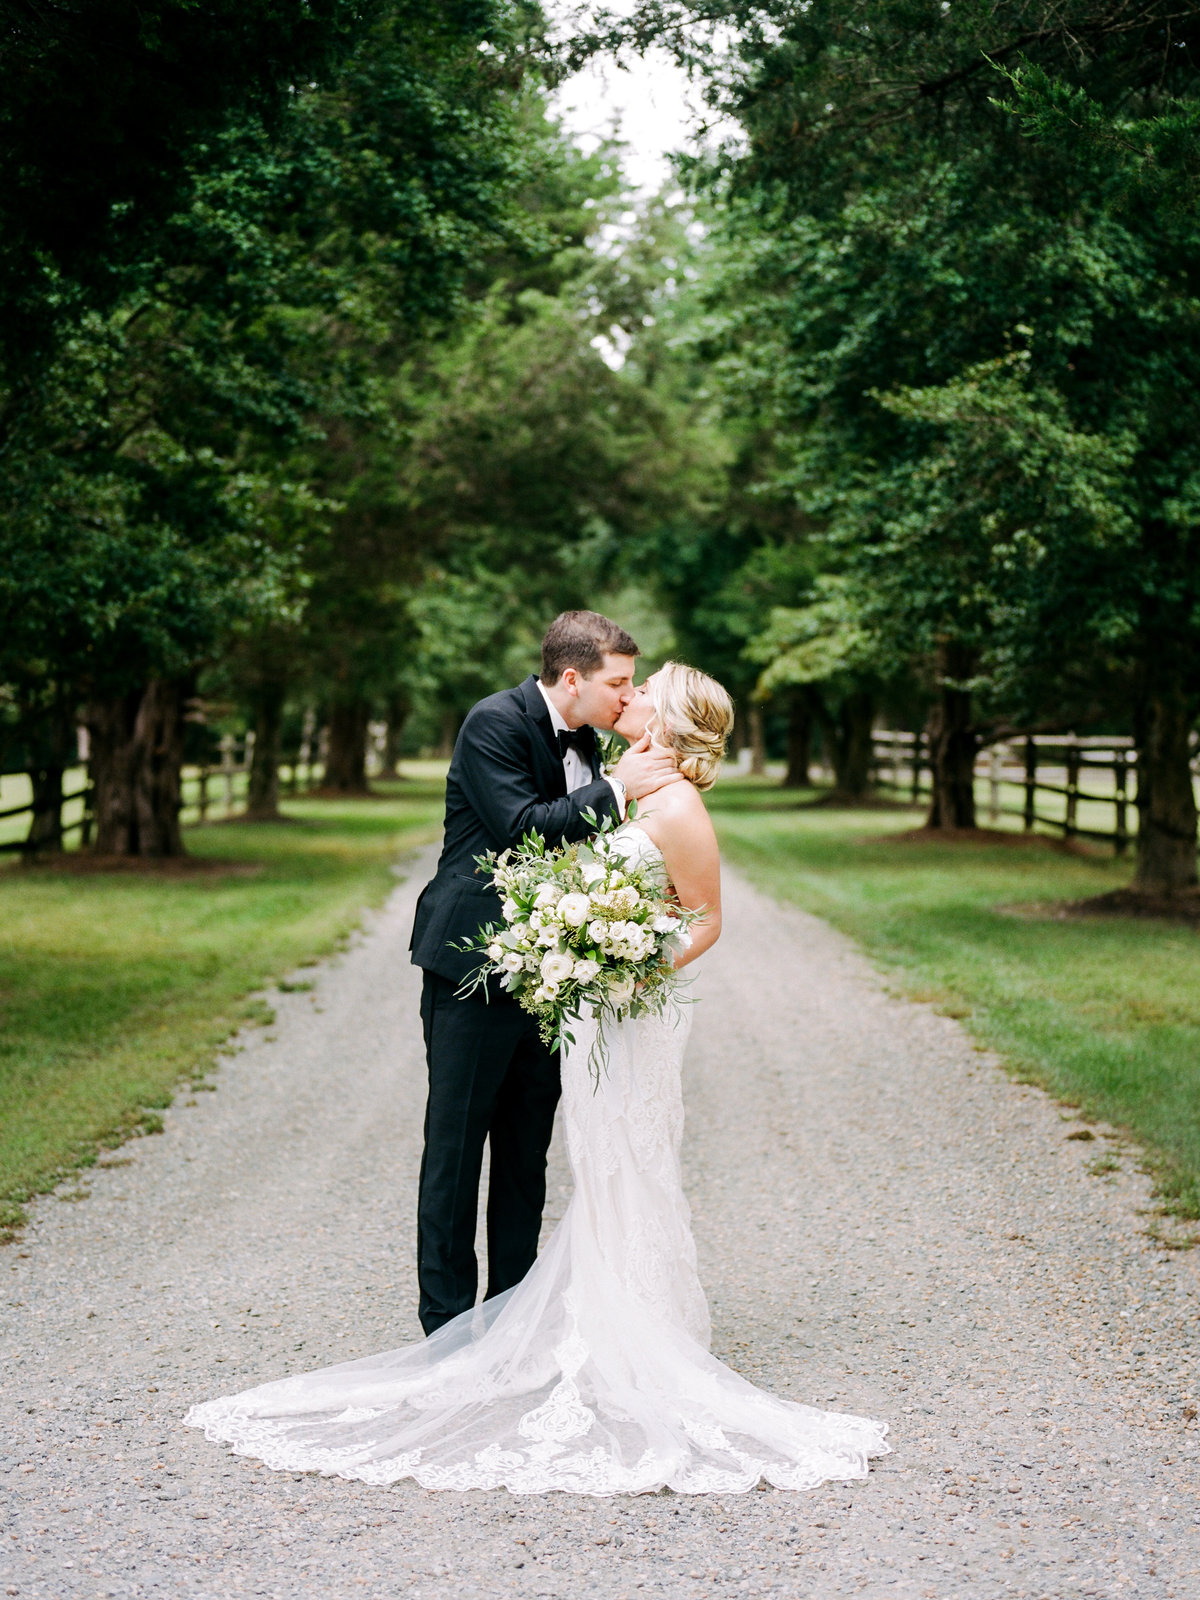 MeganMichael_BrideGroom_AmyNicolePhotography114